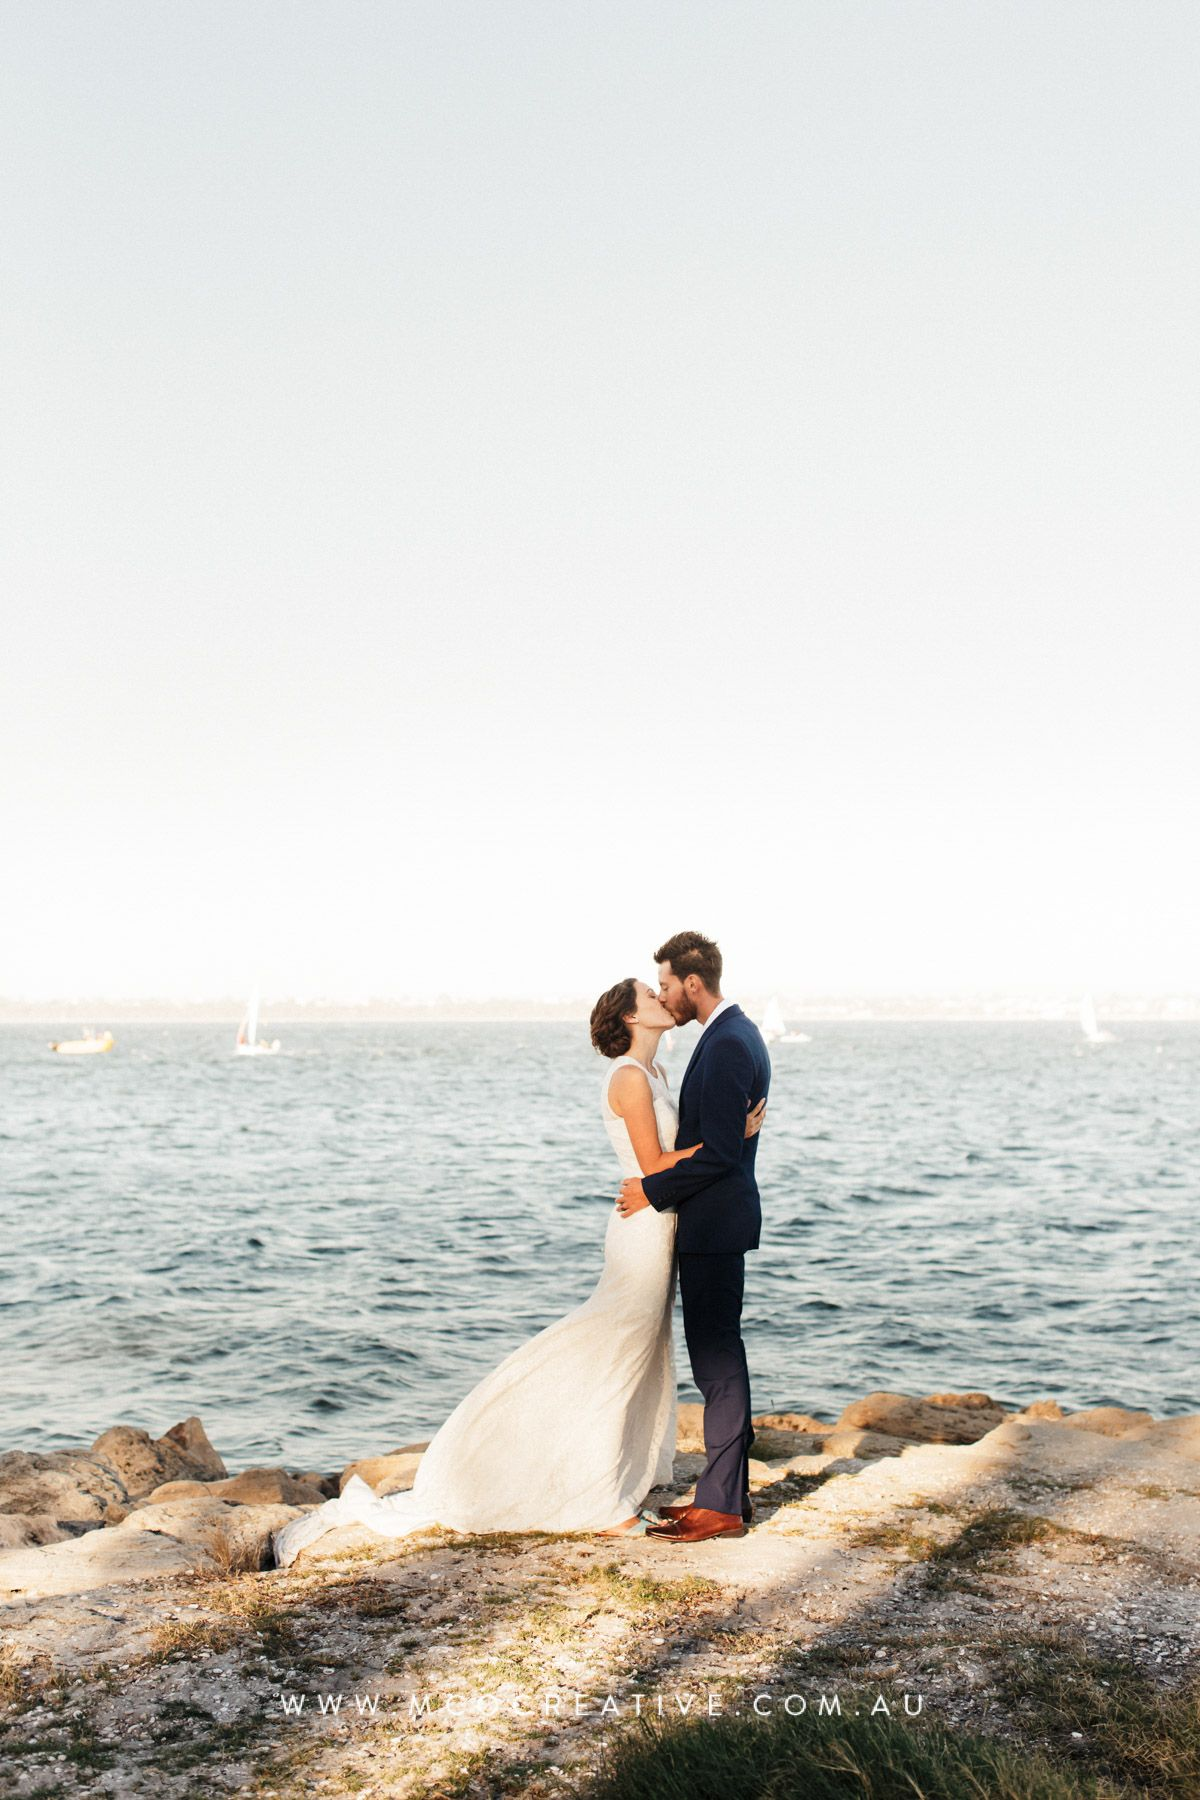 Wedding photography by and so they wandered muco muco